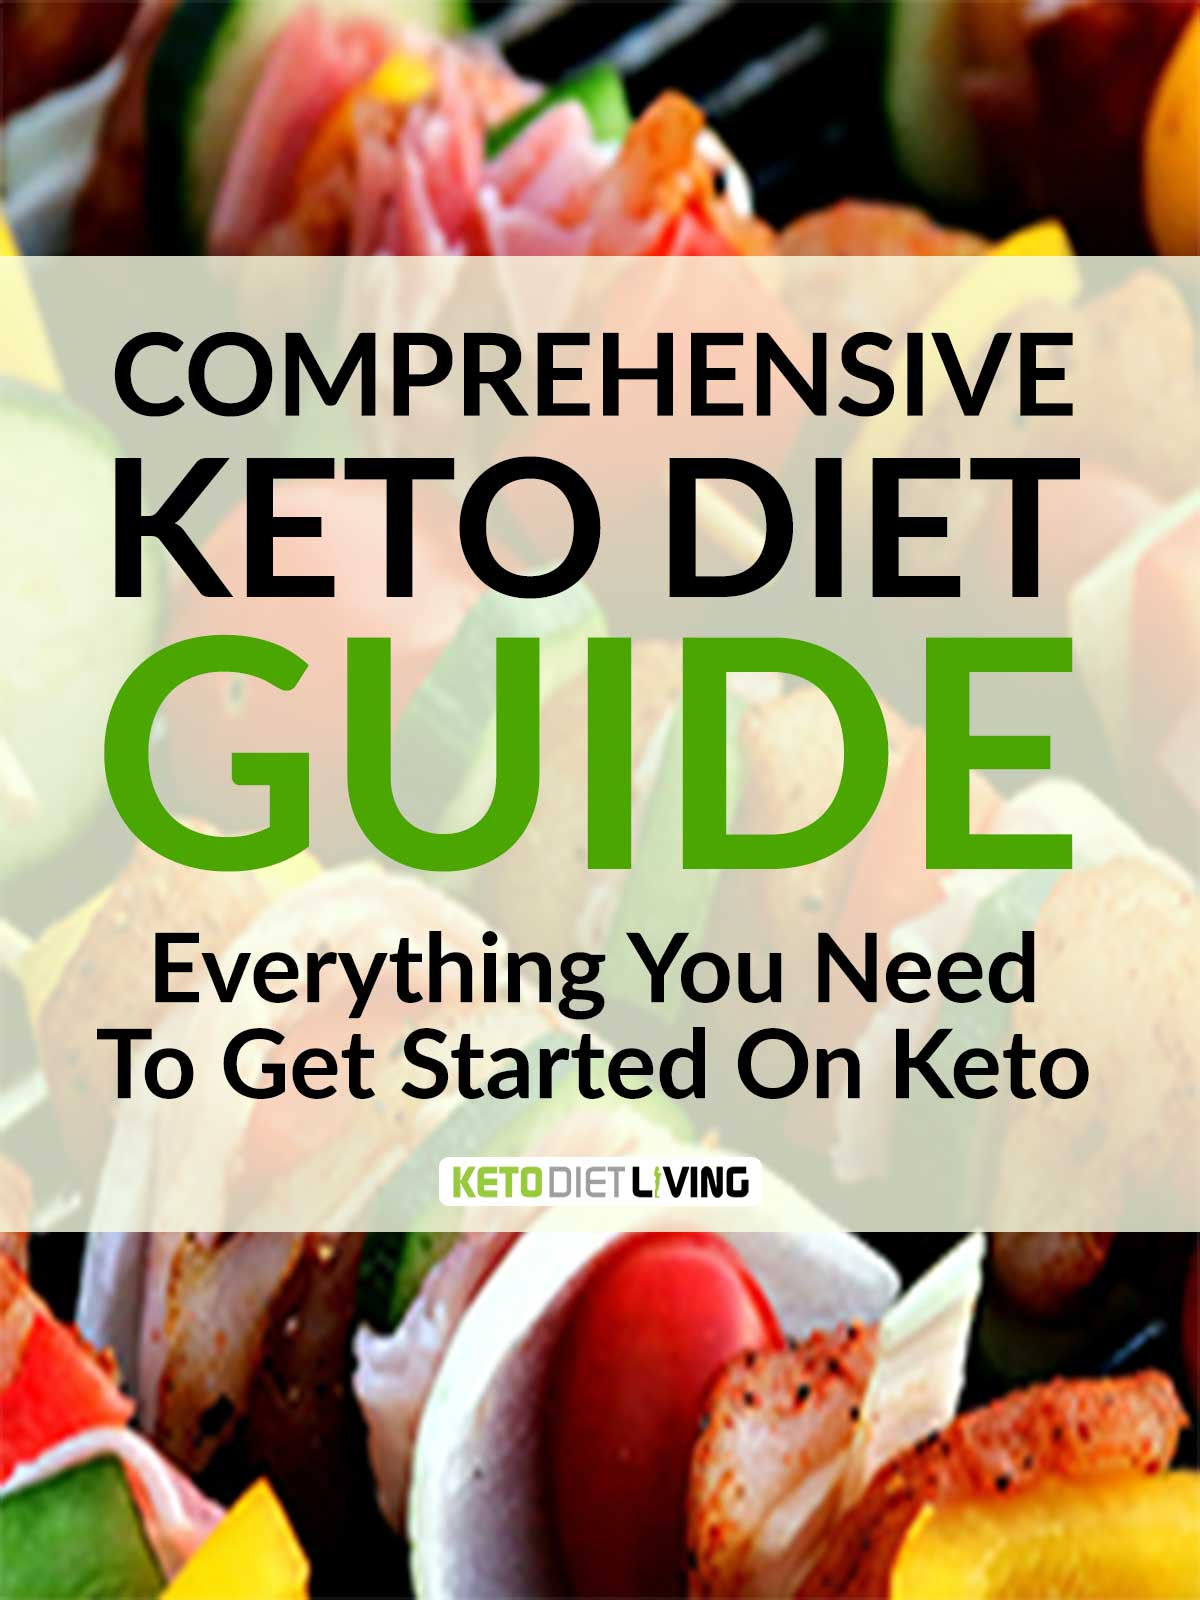 Ketogenic Diet Quick Start Guide for Beginners | Keto Diet Living